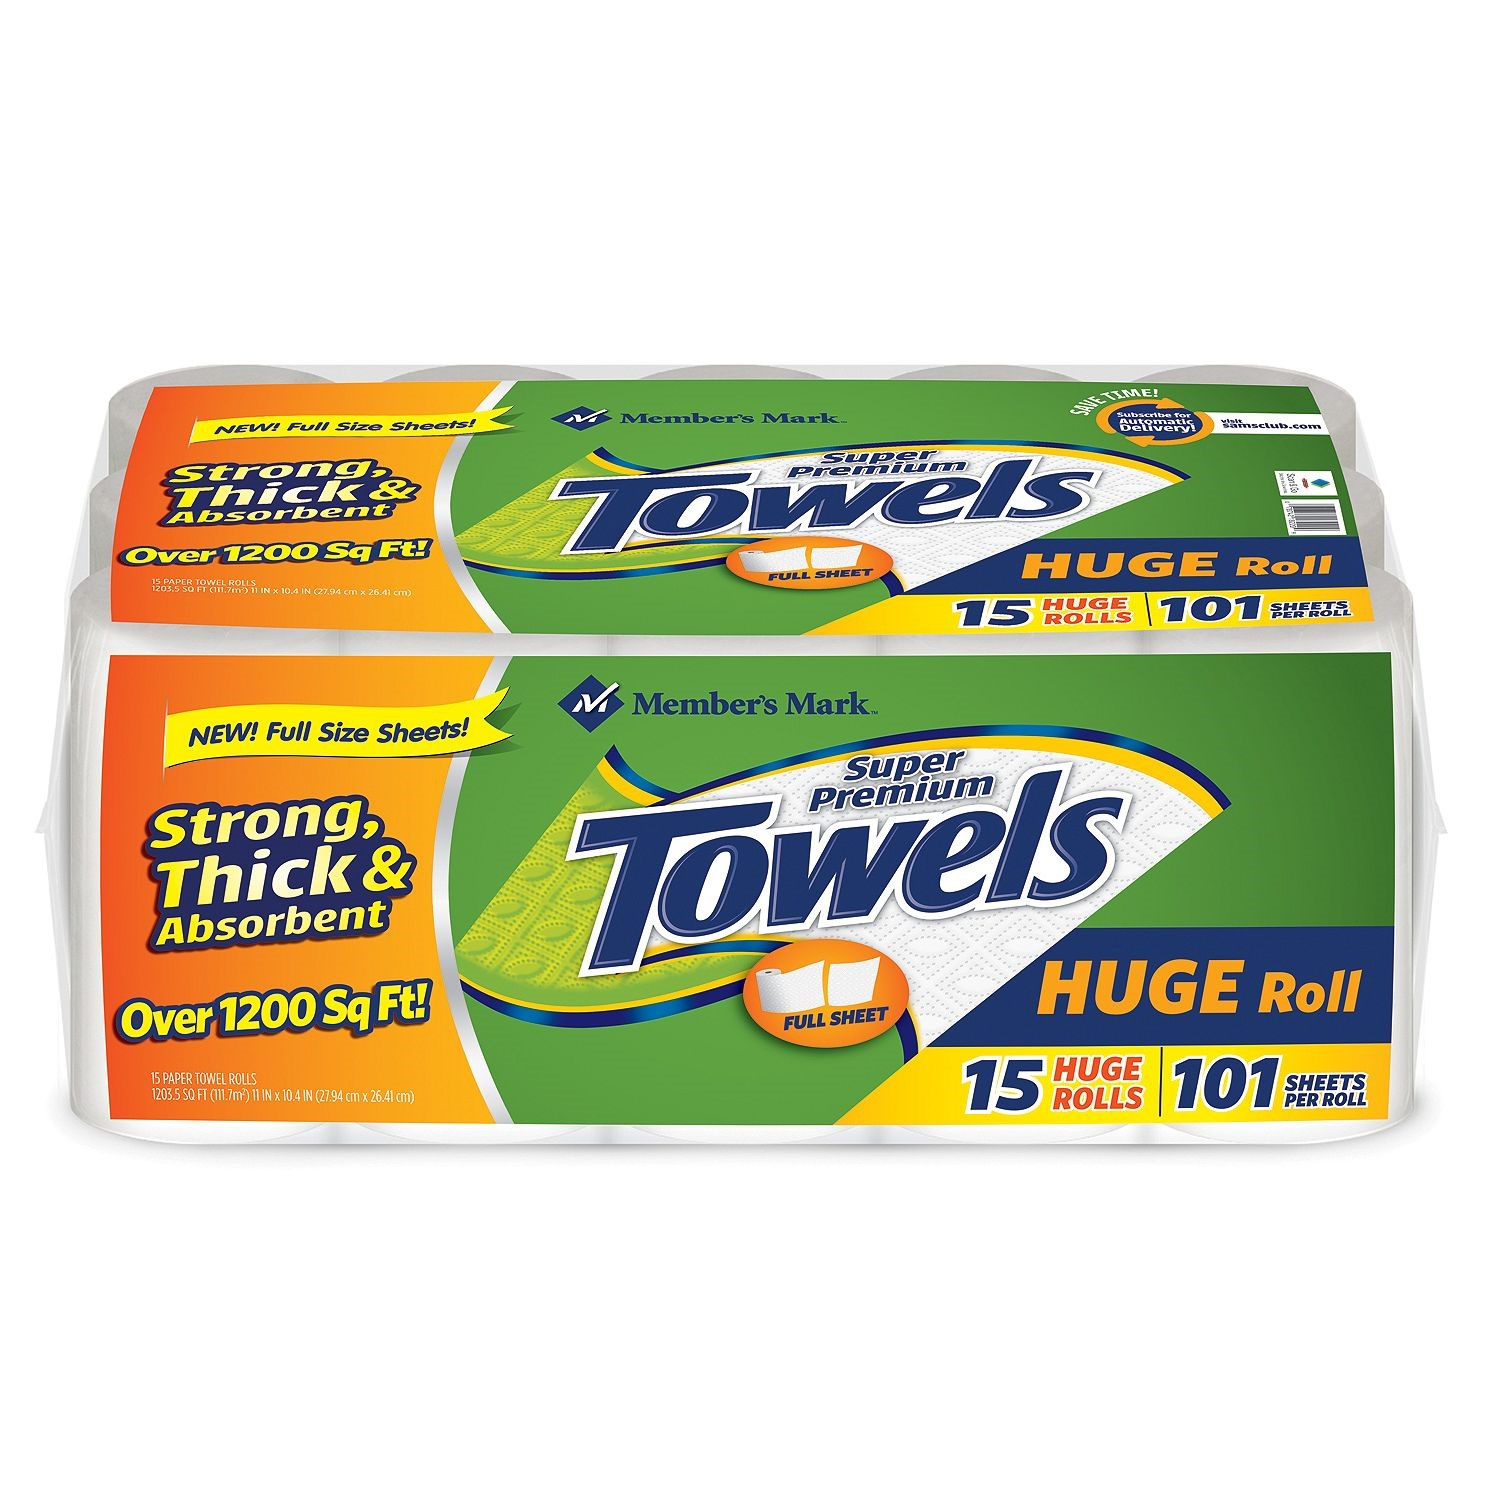 Member's Mark Premium Paper Towels, 15 Huge Rolls